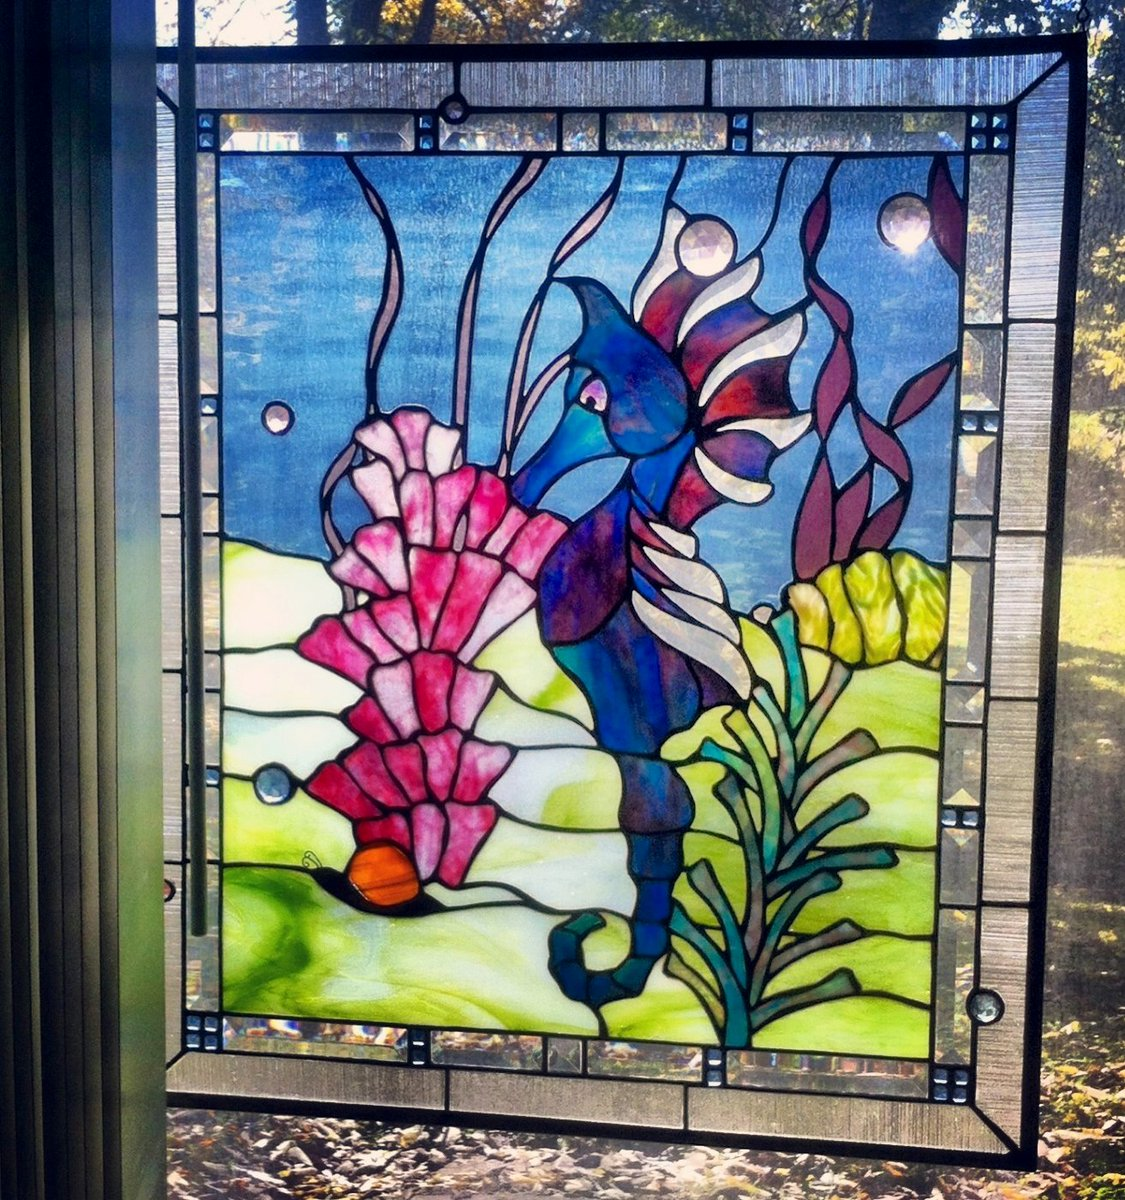 ...a favorite seahorse panel I made years ago and still enjoy every day. #stainedglass #ocean #jeweled #glass #art https://t.co/HSJs9oq6gL